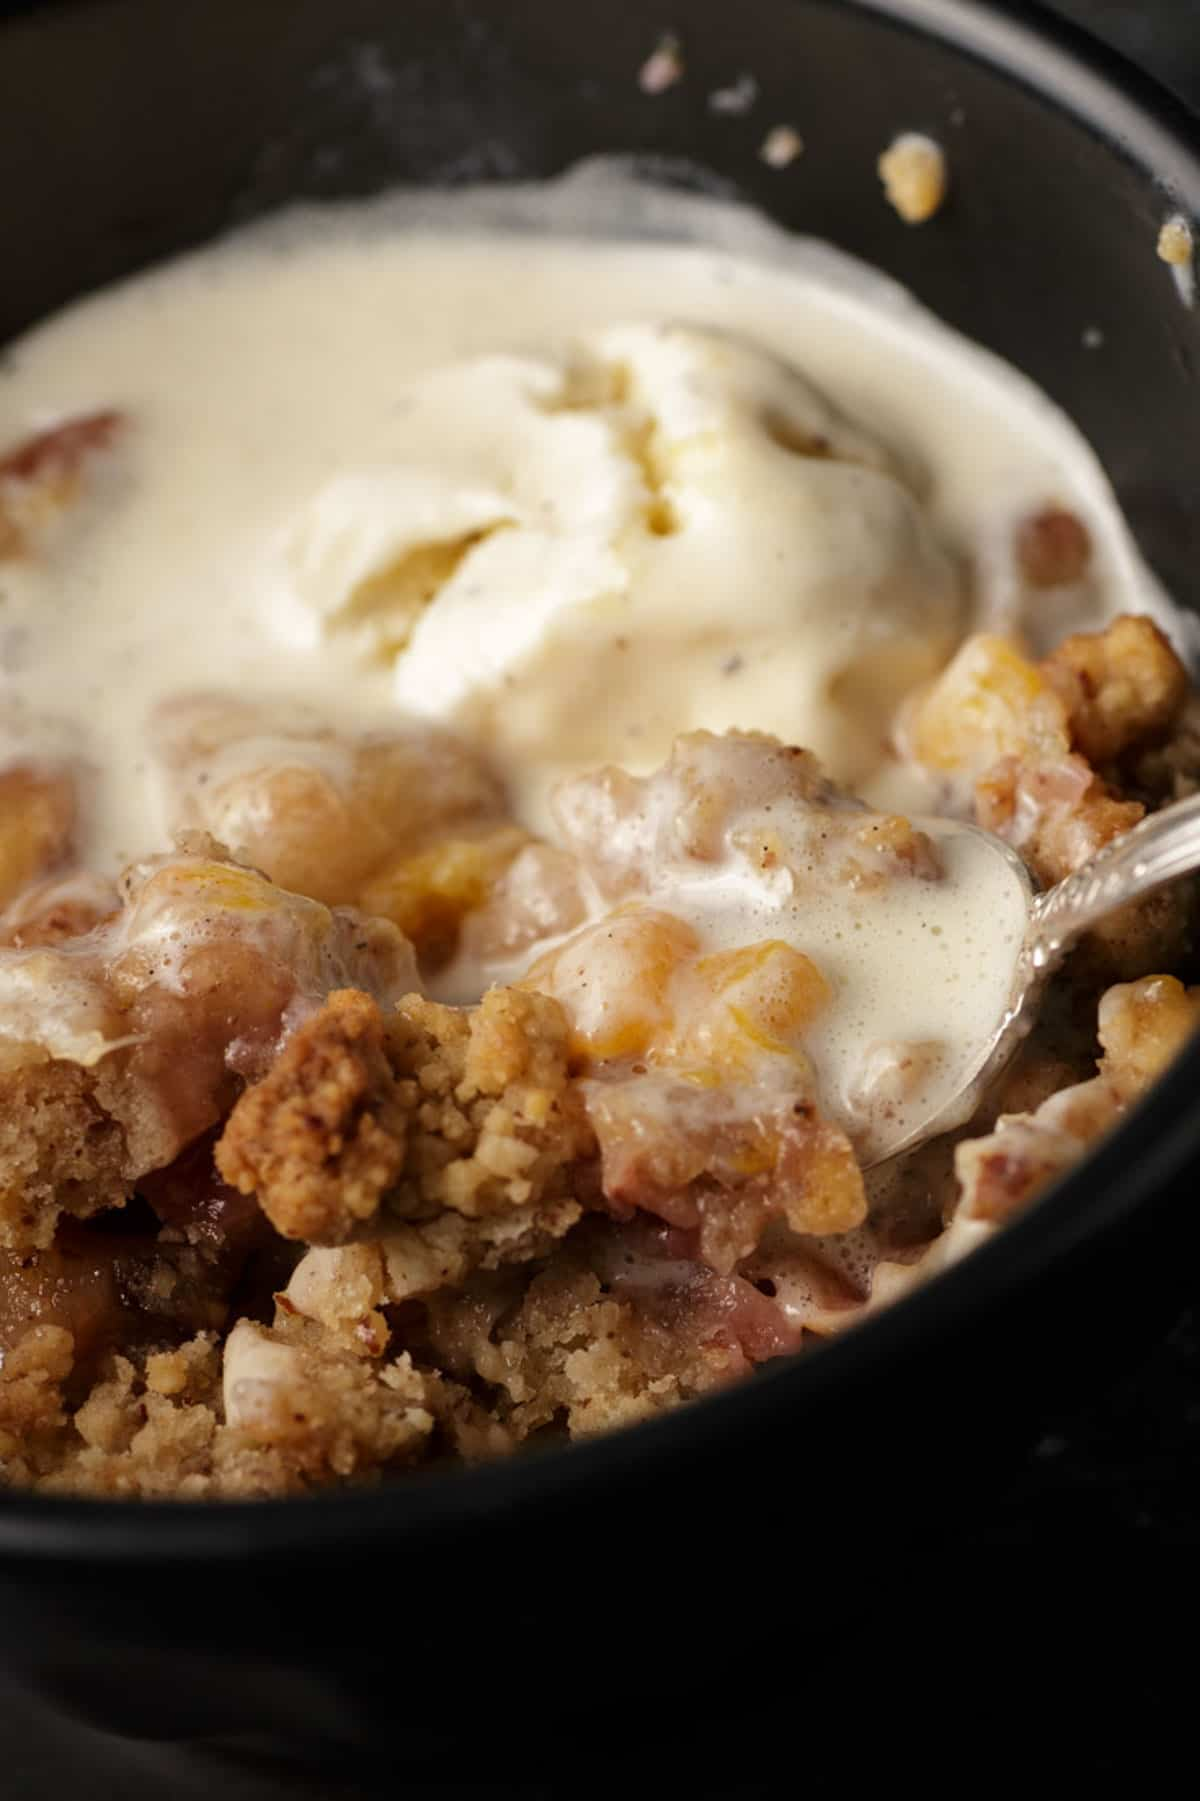 A spoon full of peach and pecan crummble.